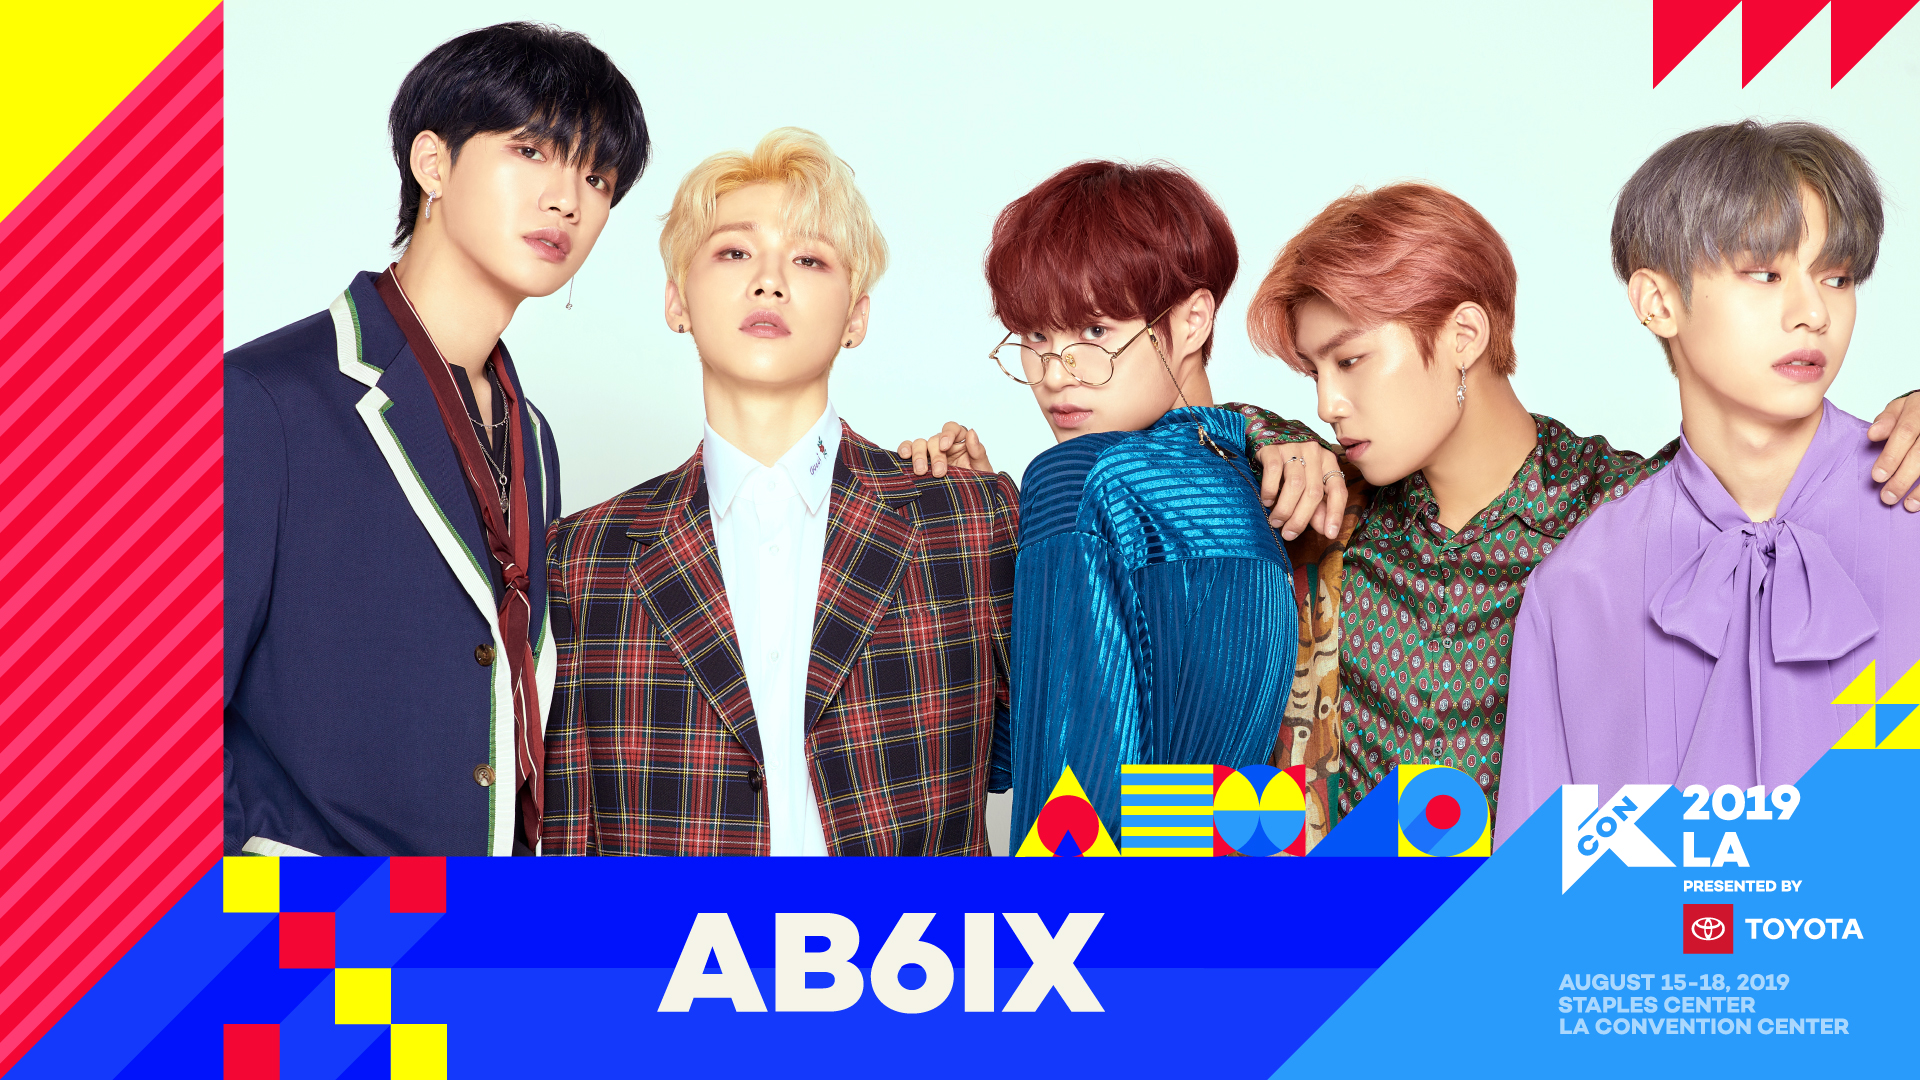 kconusa com - KCON USA OFFICIAL SITE